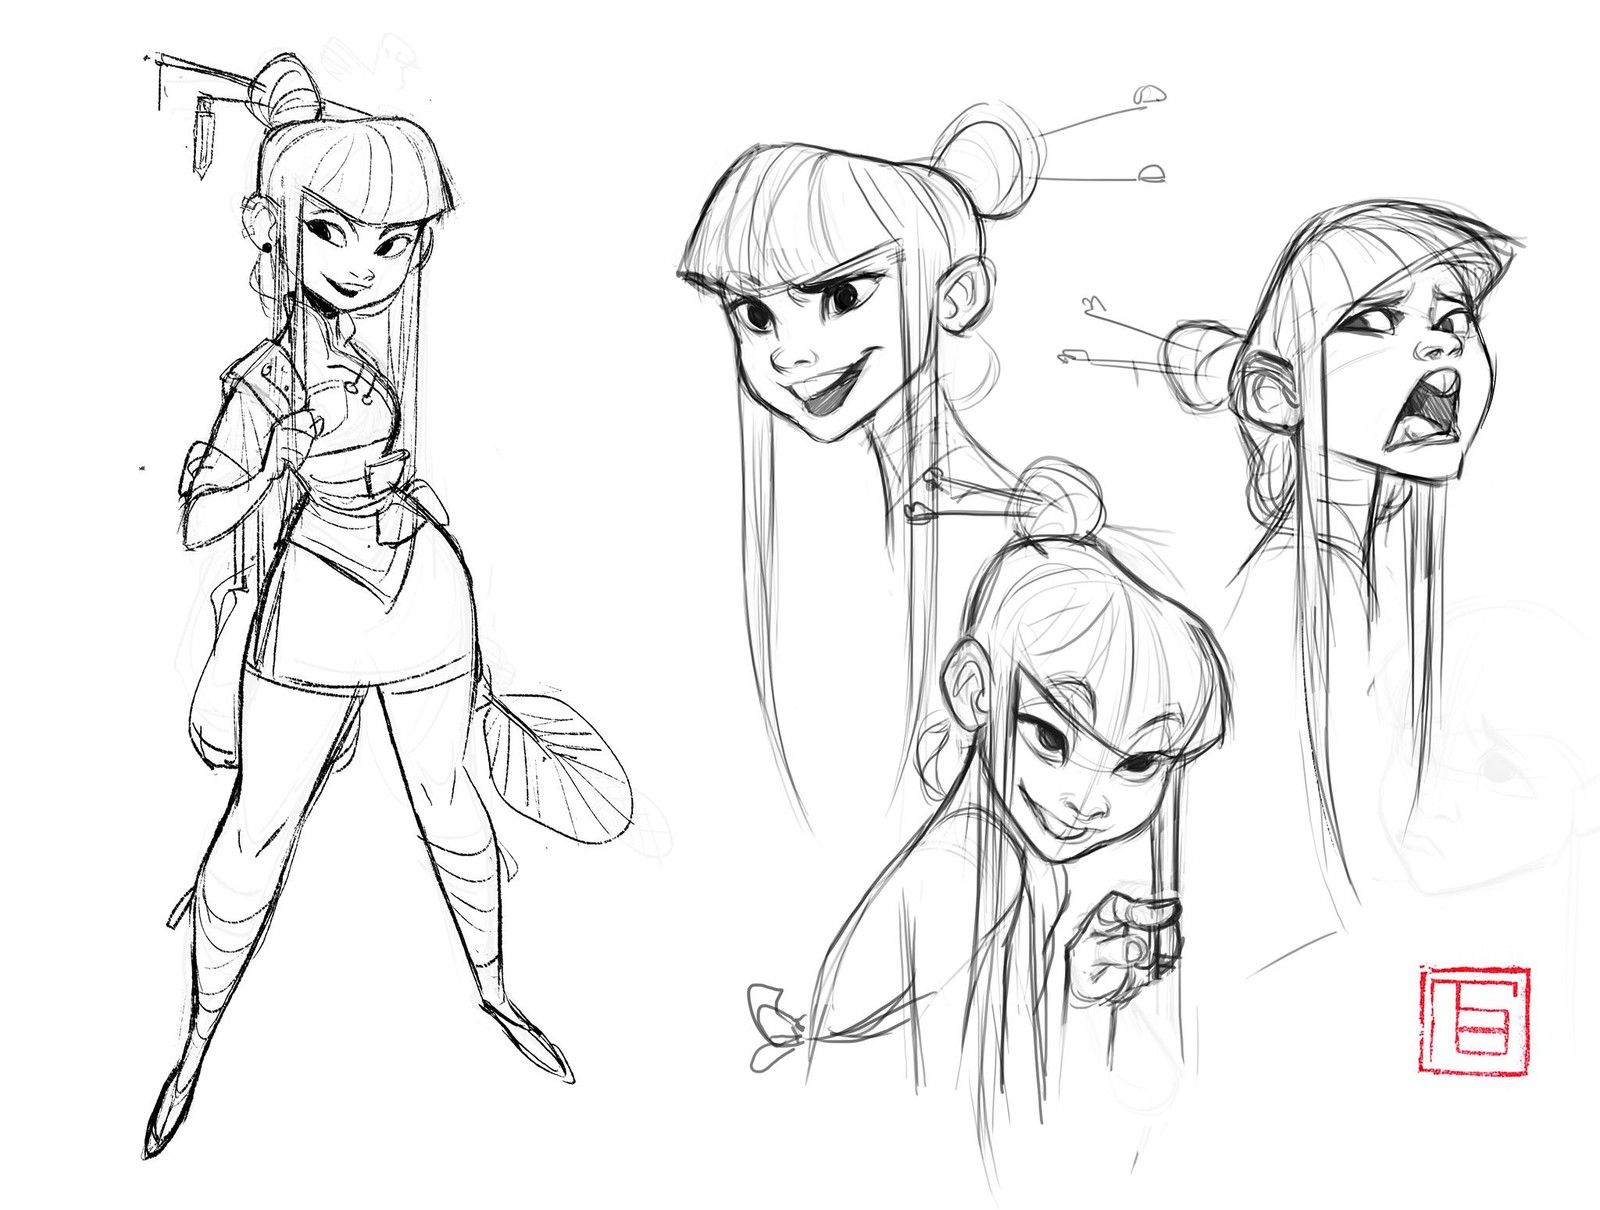 Animation character design artists : Expression doodle tb choi on artstation at